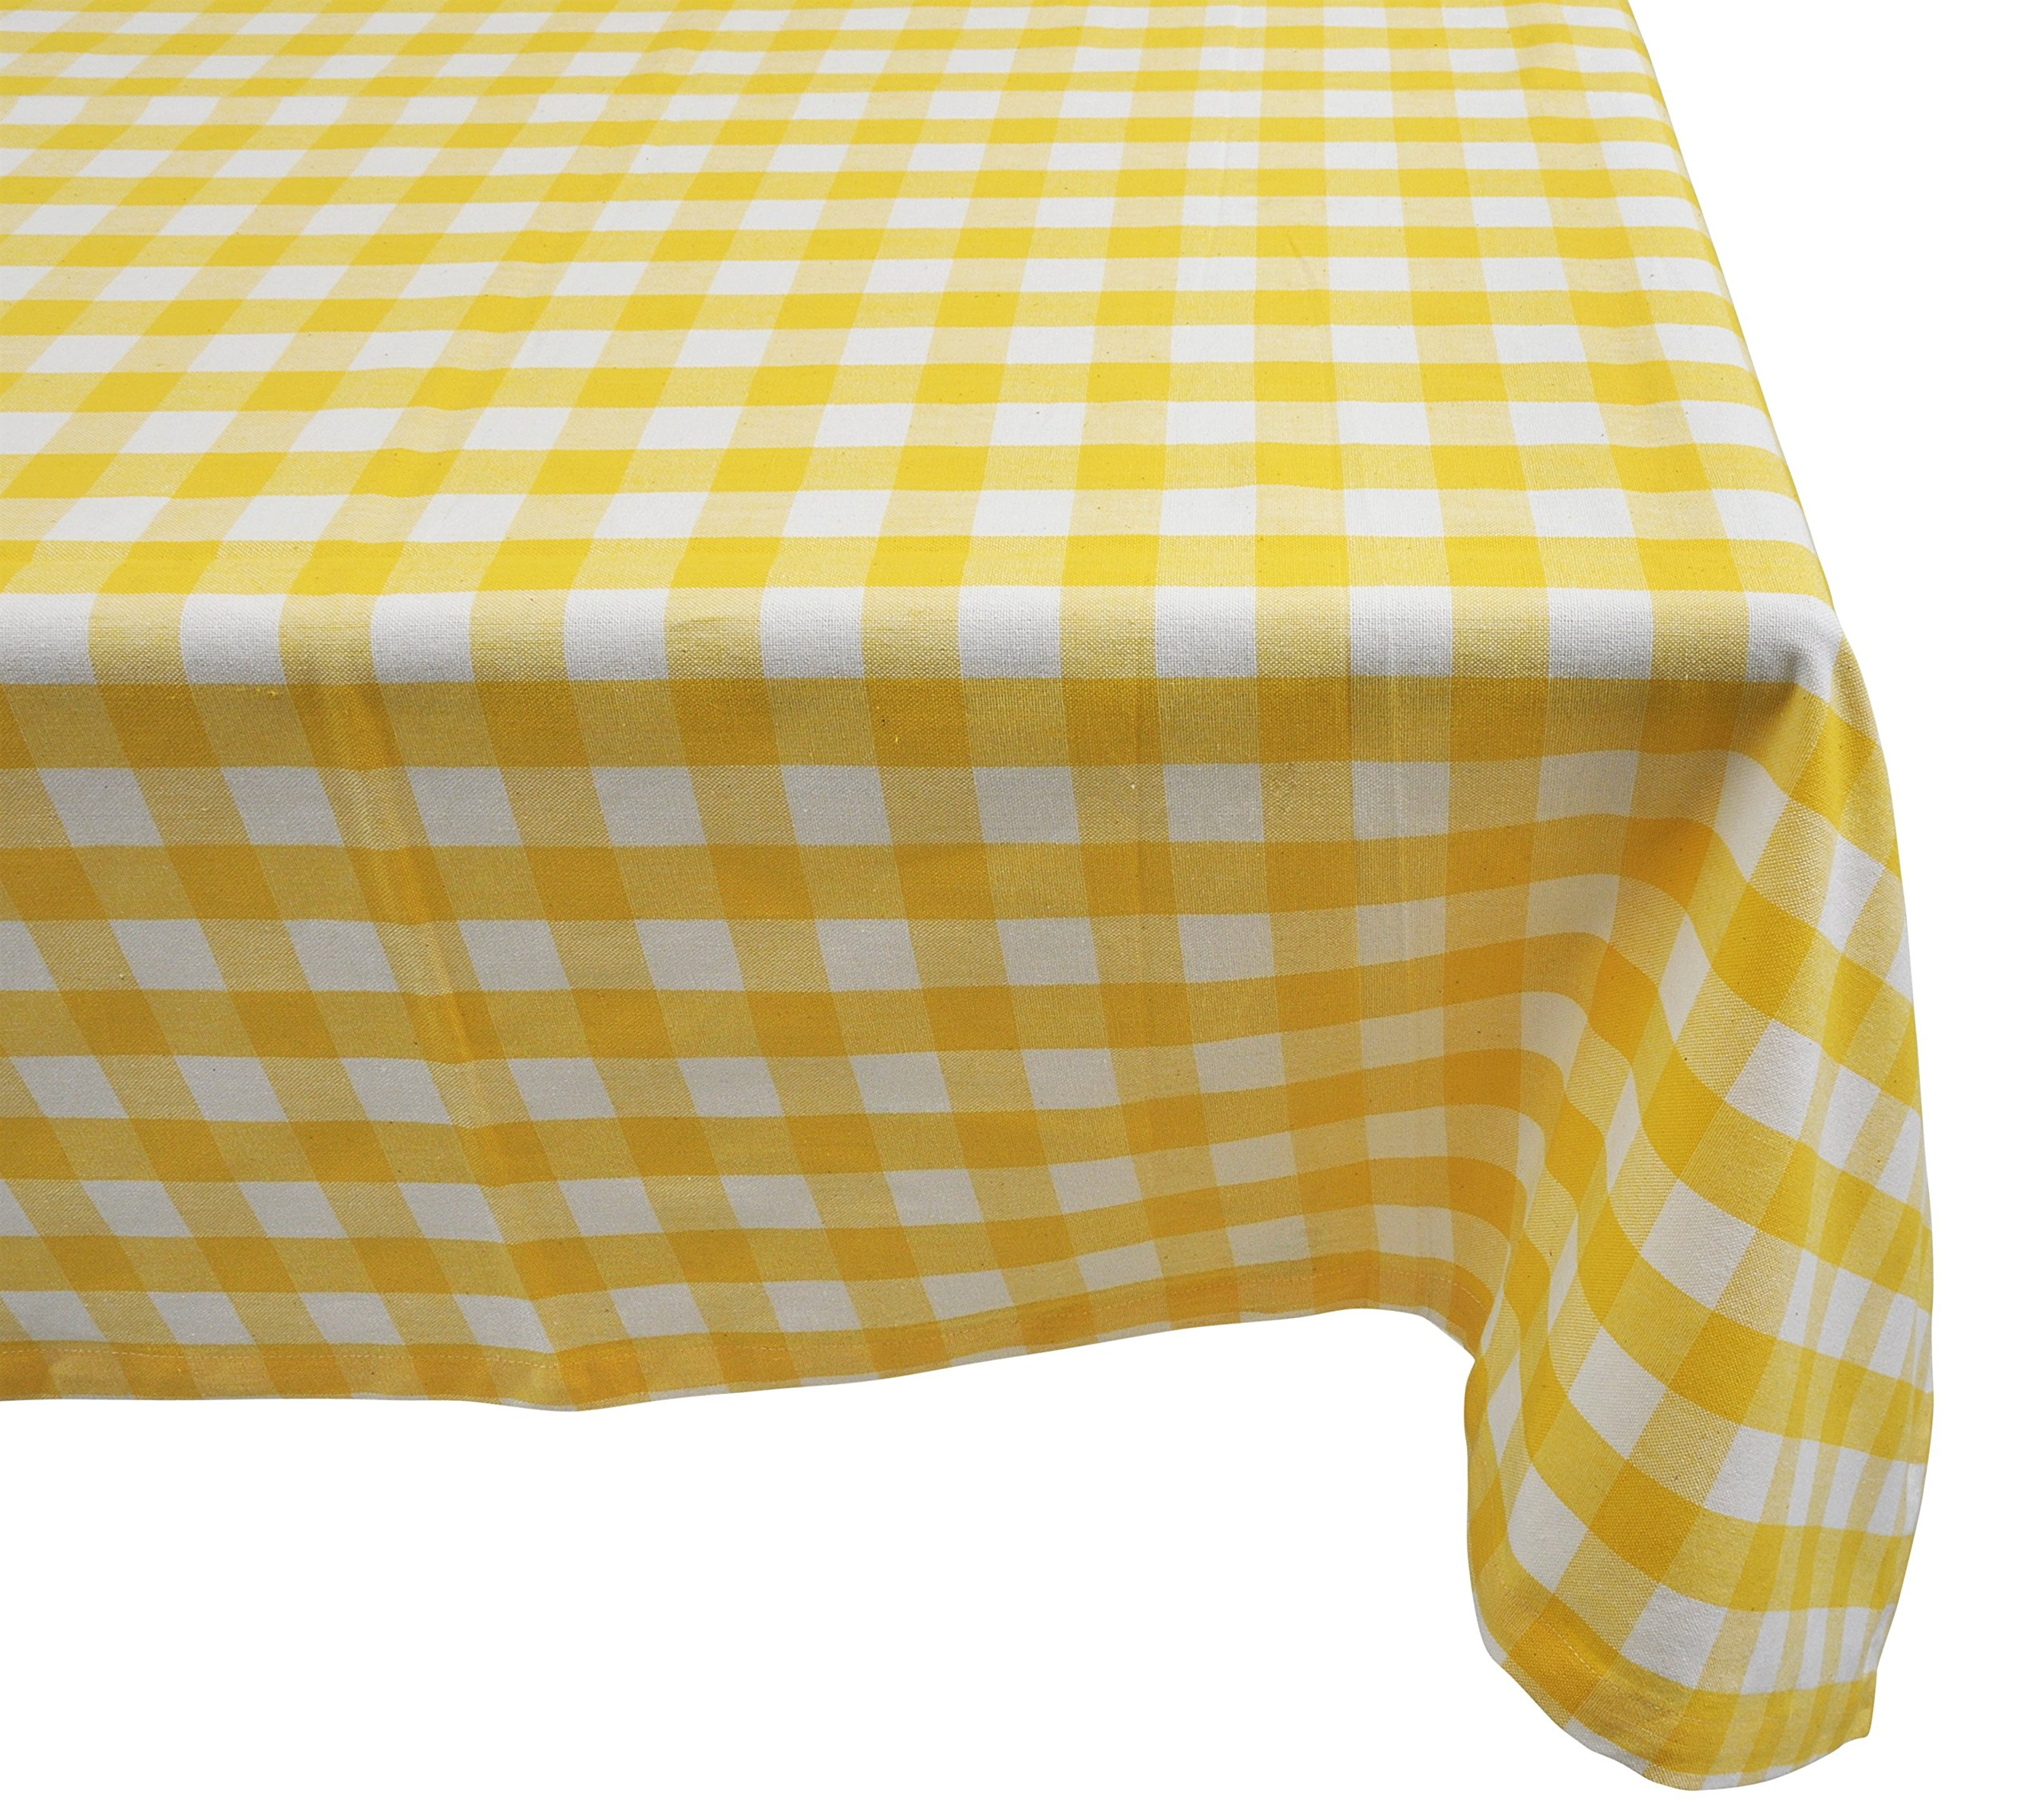 Yourtablecloth 100% Cotton Checkered Buffalo Plaid Tablecloth –for Home, Restaurants, Cafés – Be it for Everyday Dinner Picnic or Occasions like Thanksgiving 60 x 120 Rectangle/Oblong Yellow and White by Yourtablecloth (Image #1)